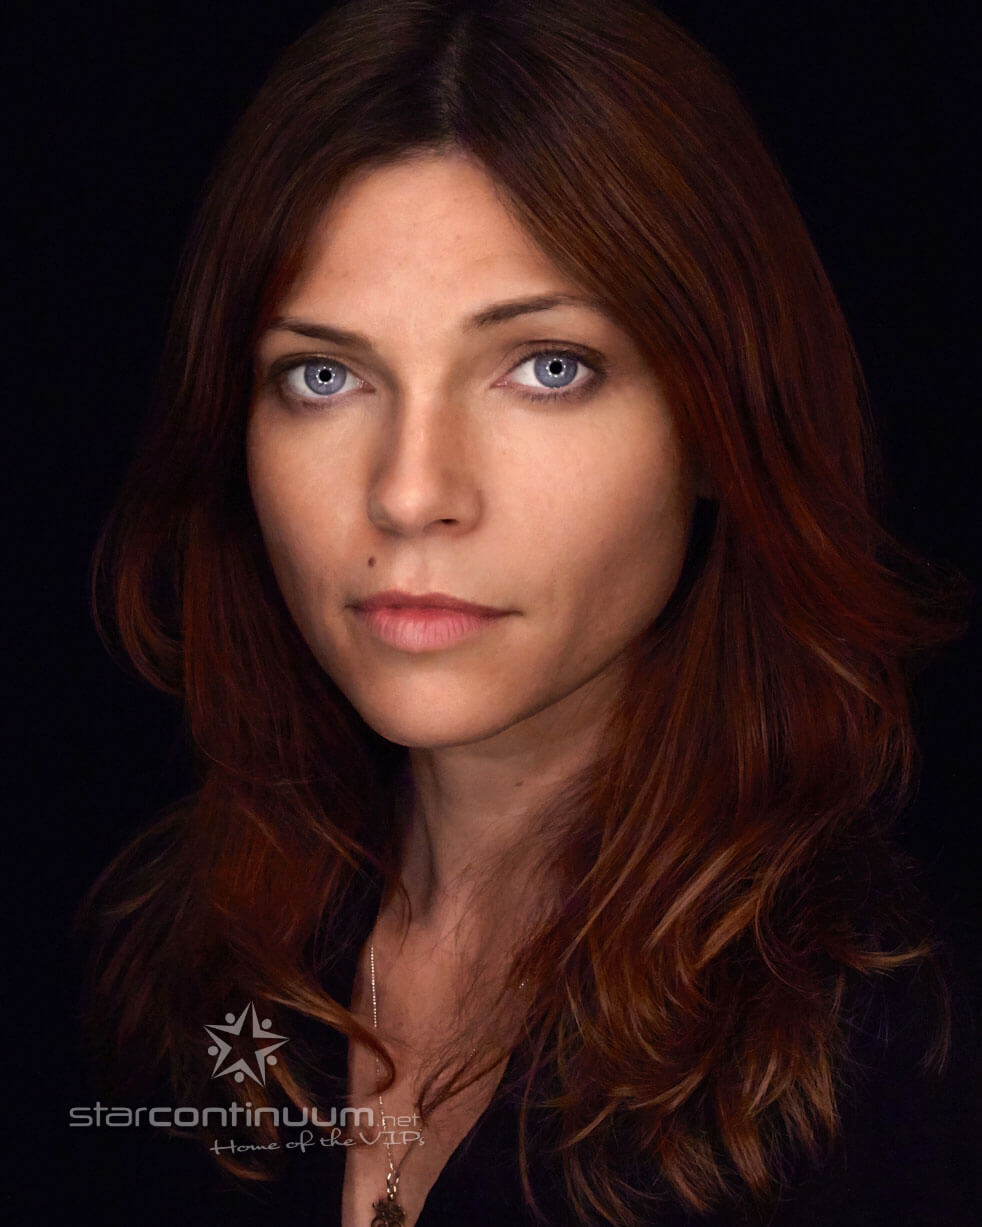 starcontinuum.net | Faces | Nicole de Boer